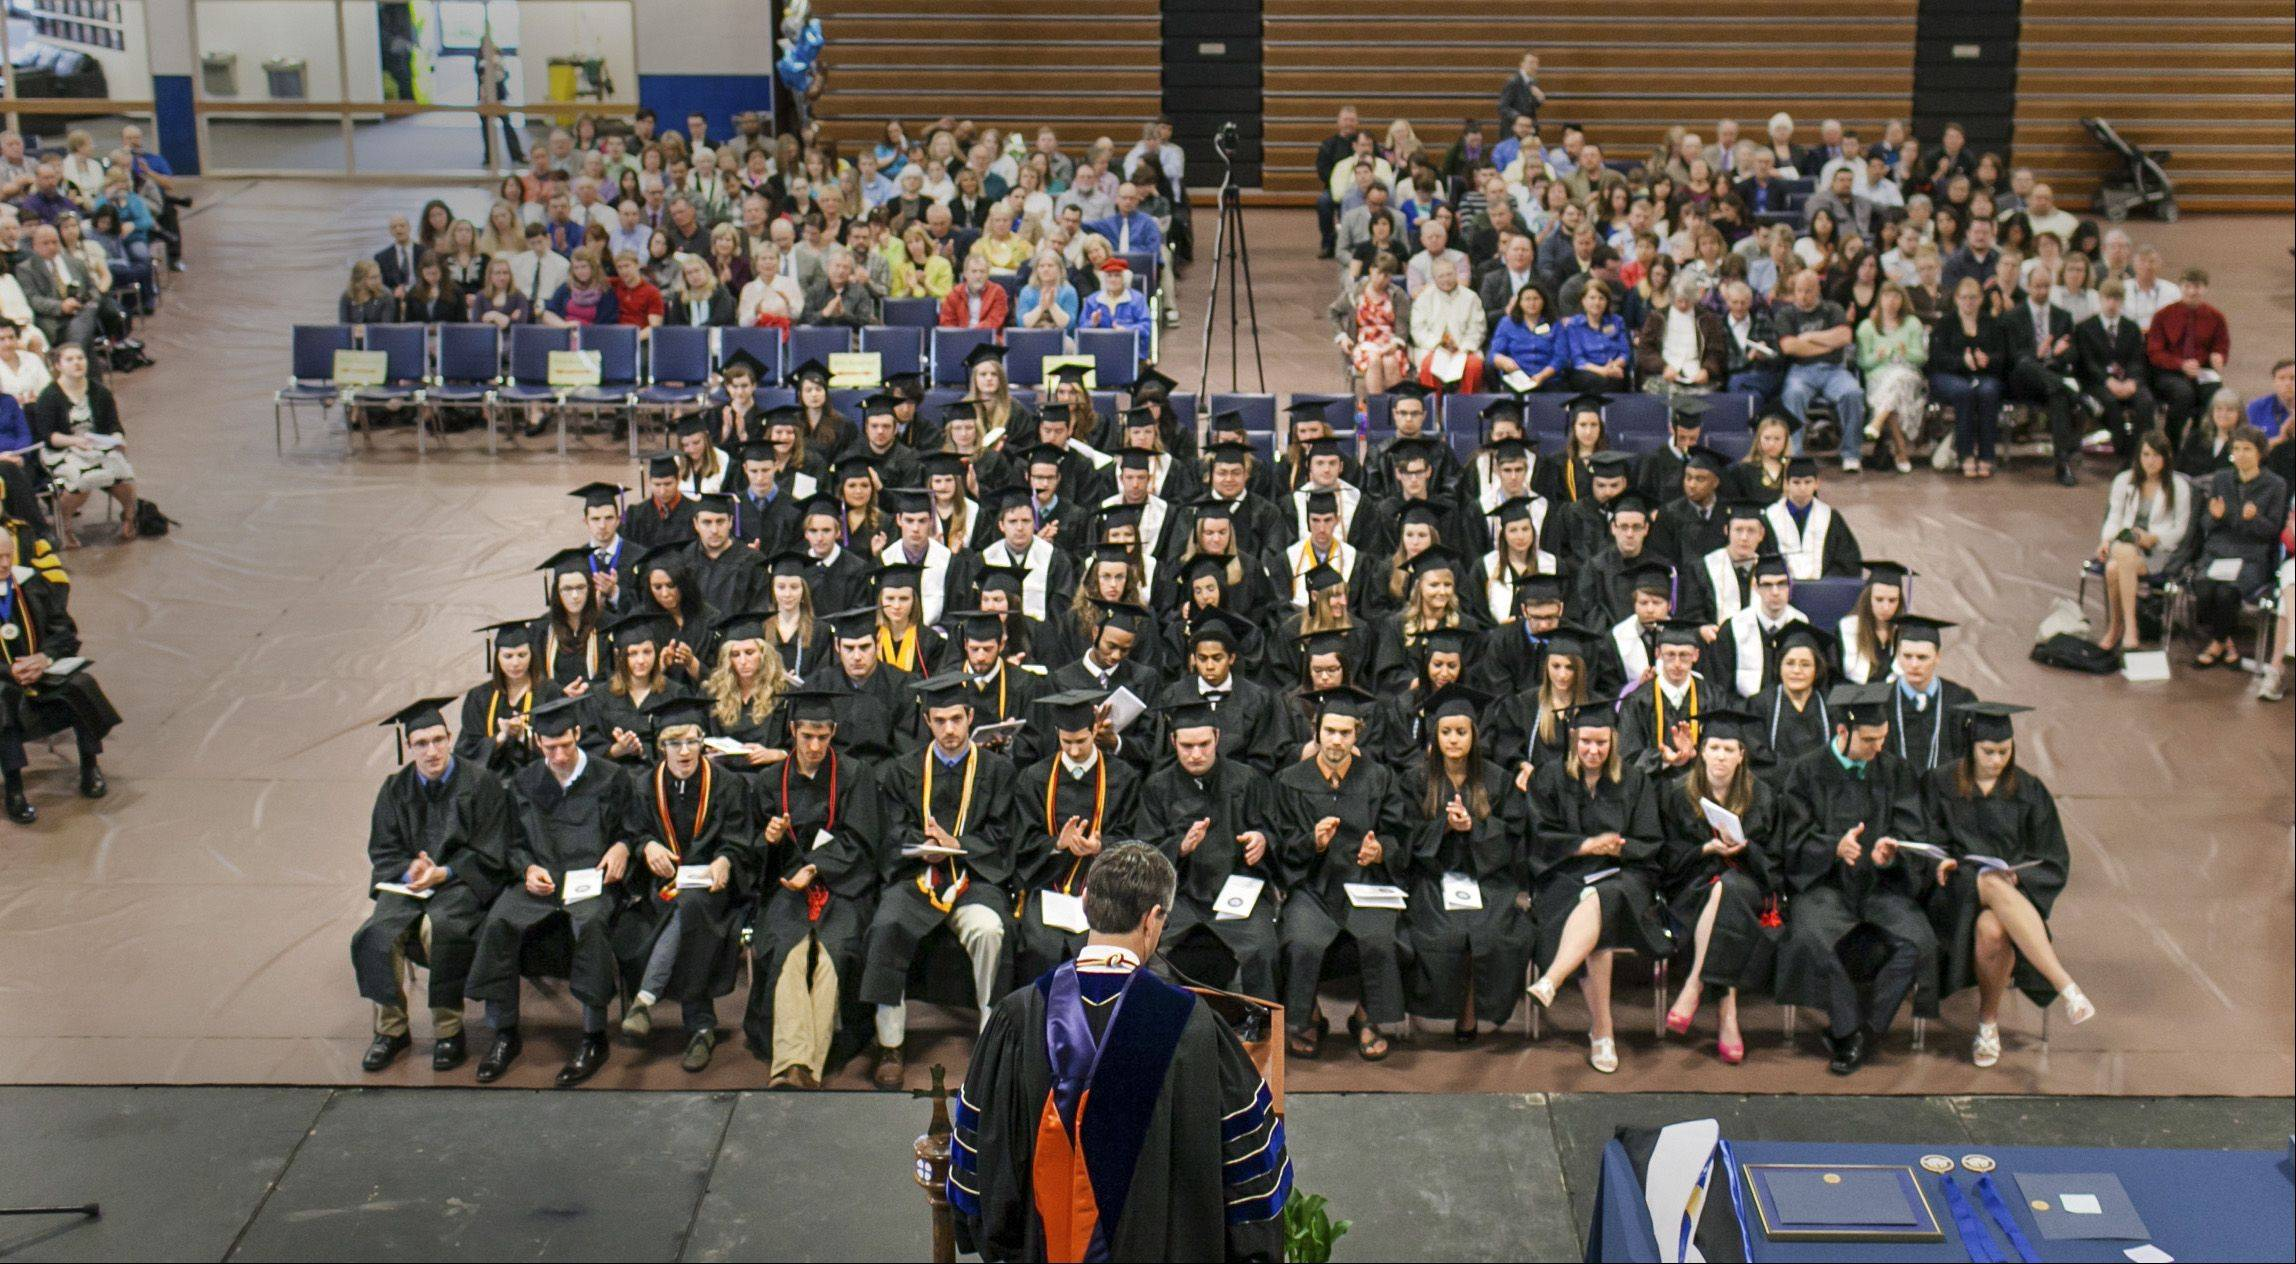 Judson University held its commencement ceremony Saturday.